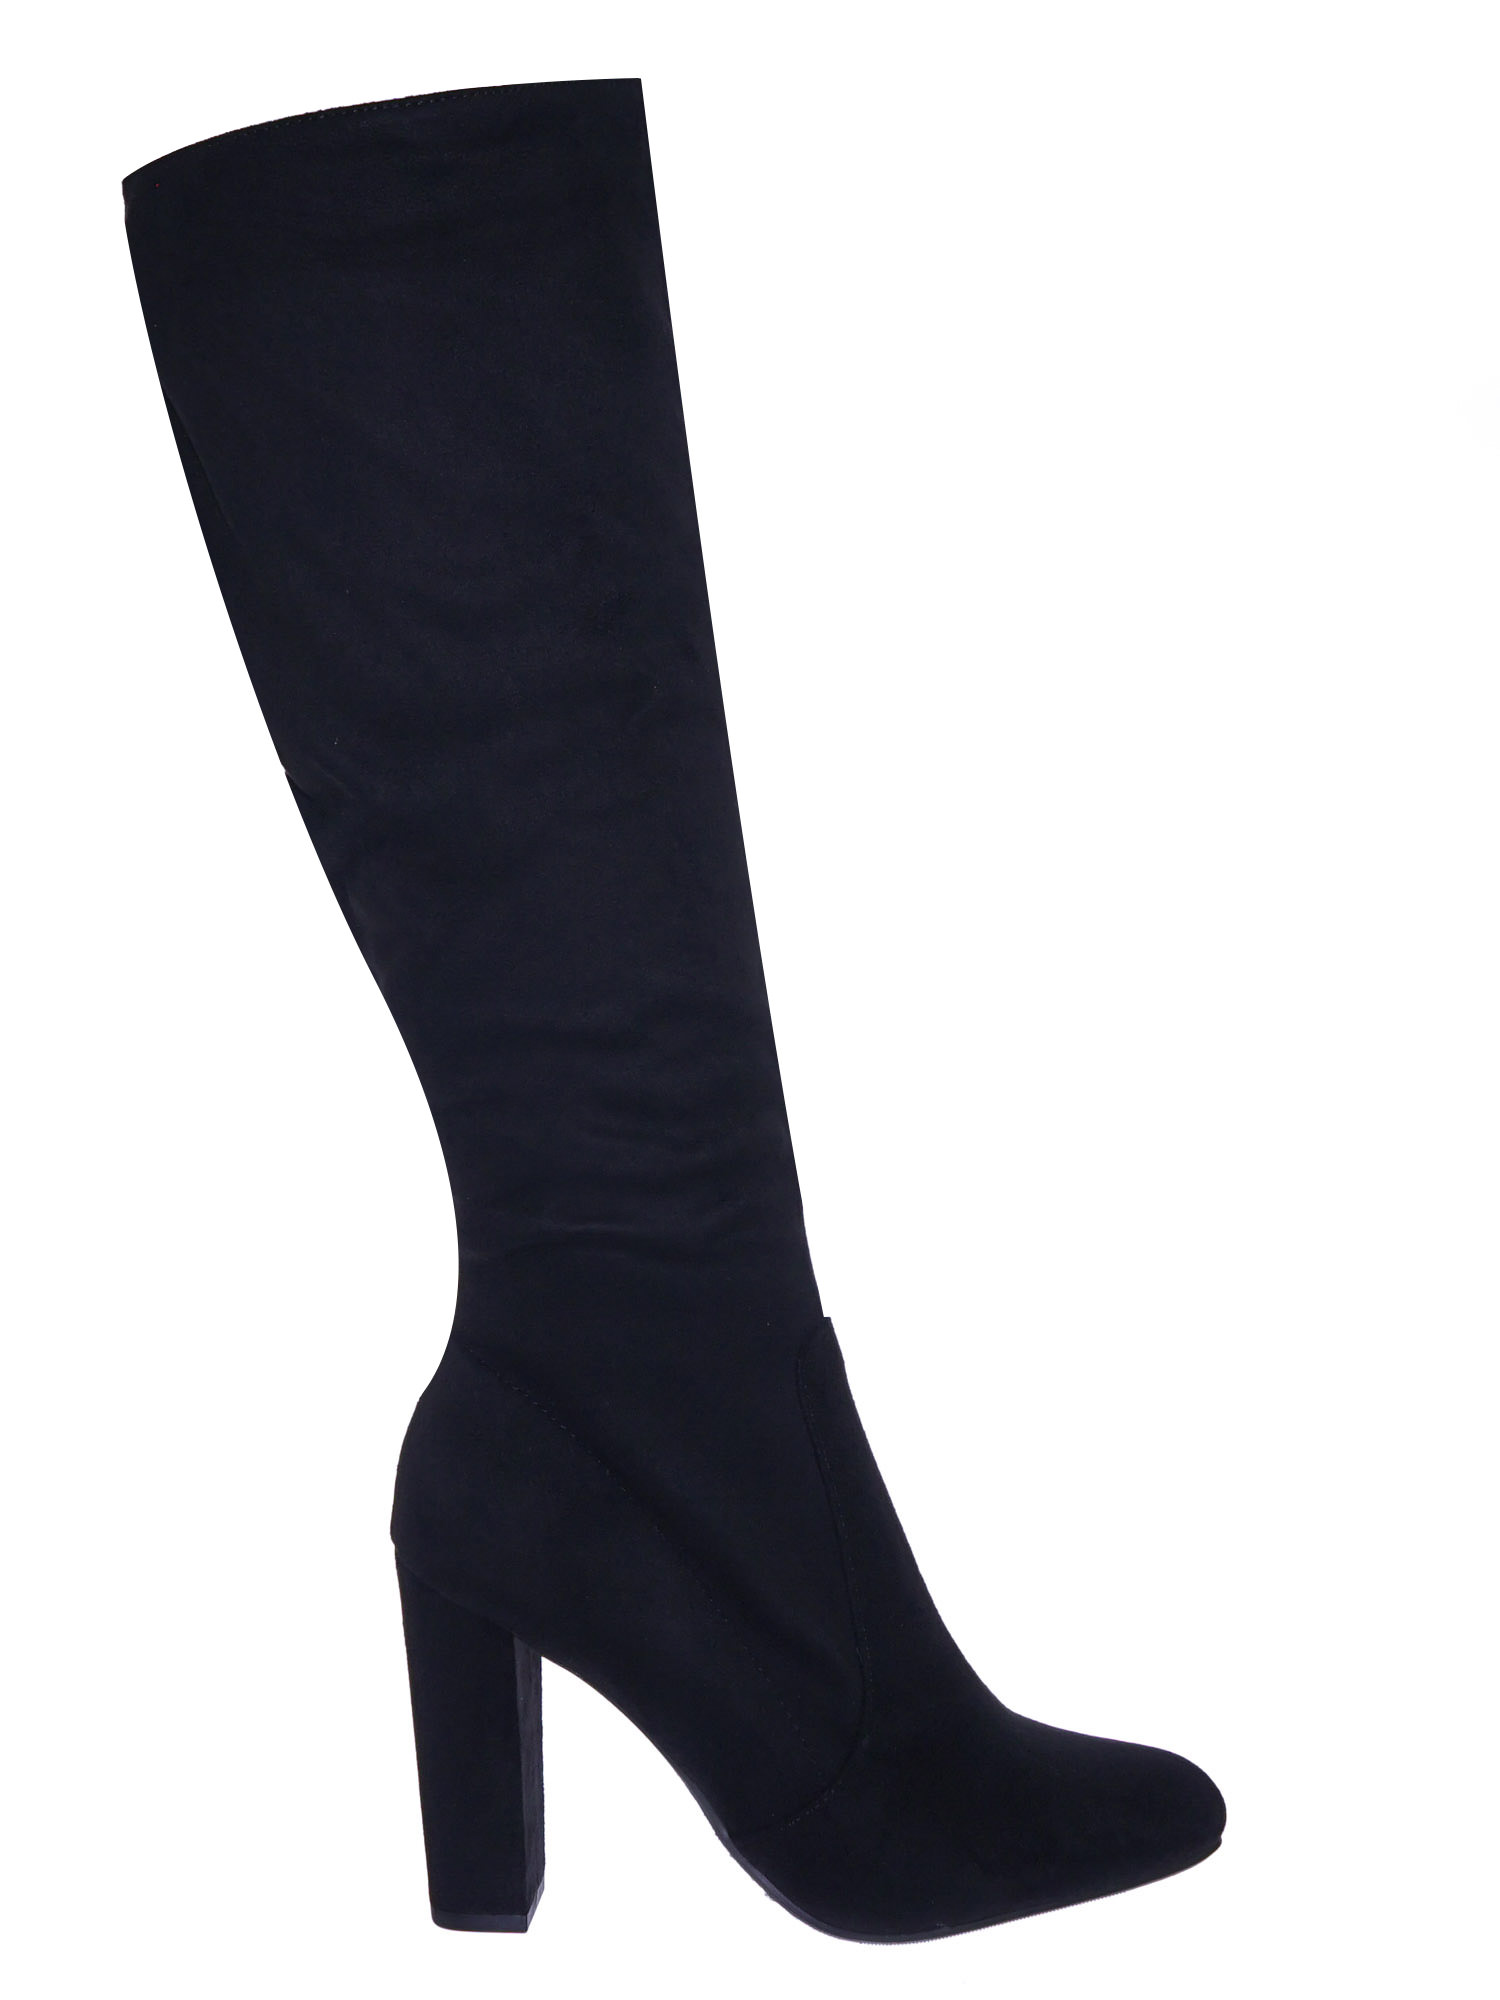 Suga by Delicious, Knee High Block Heel Dress Boots w Almond Toe